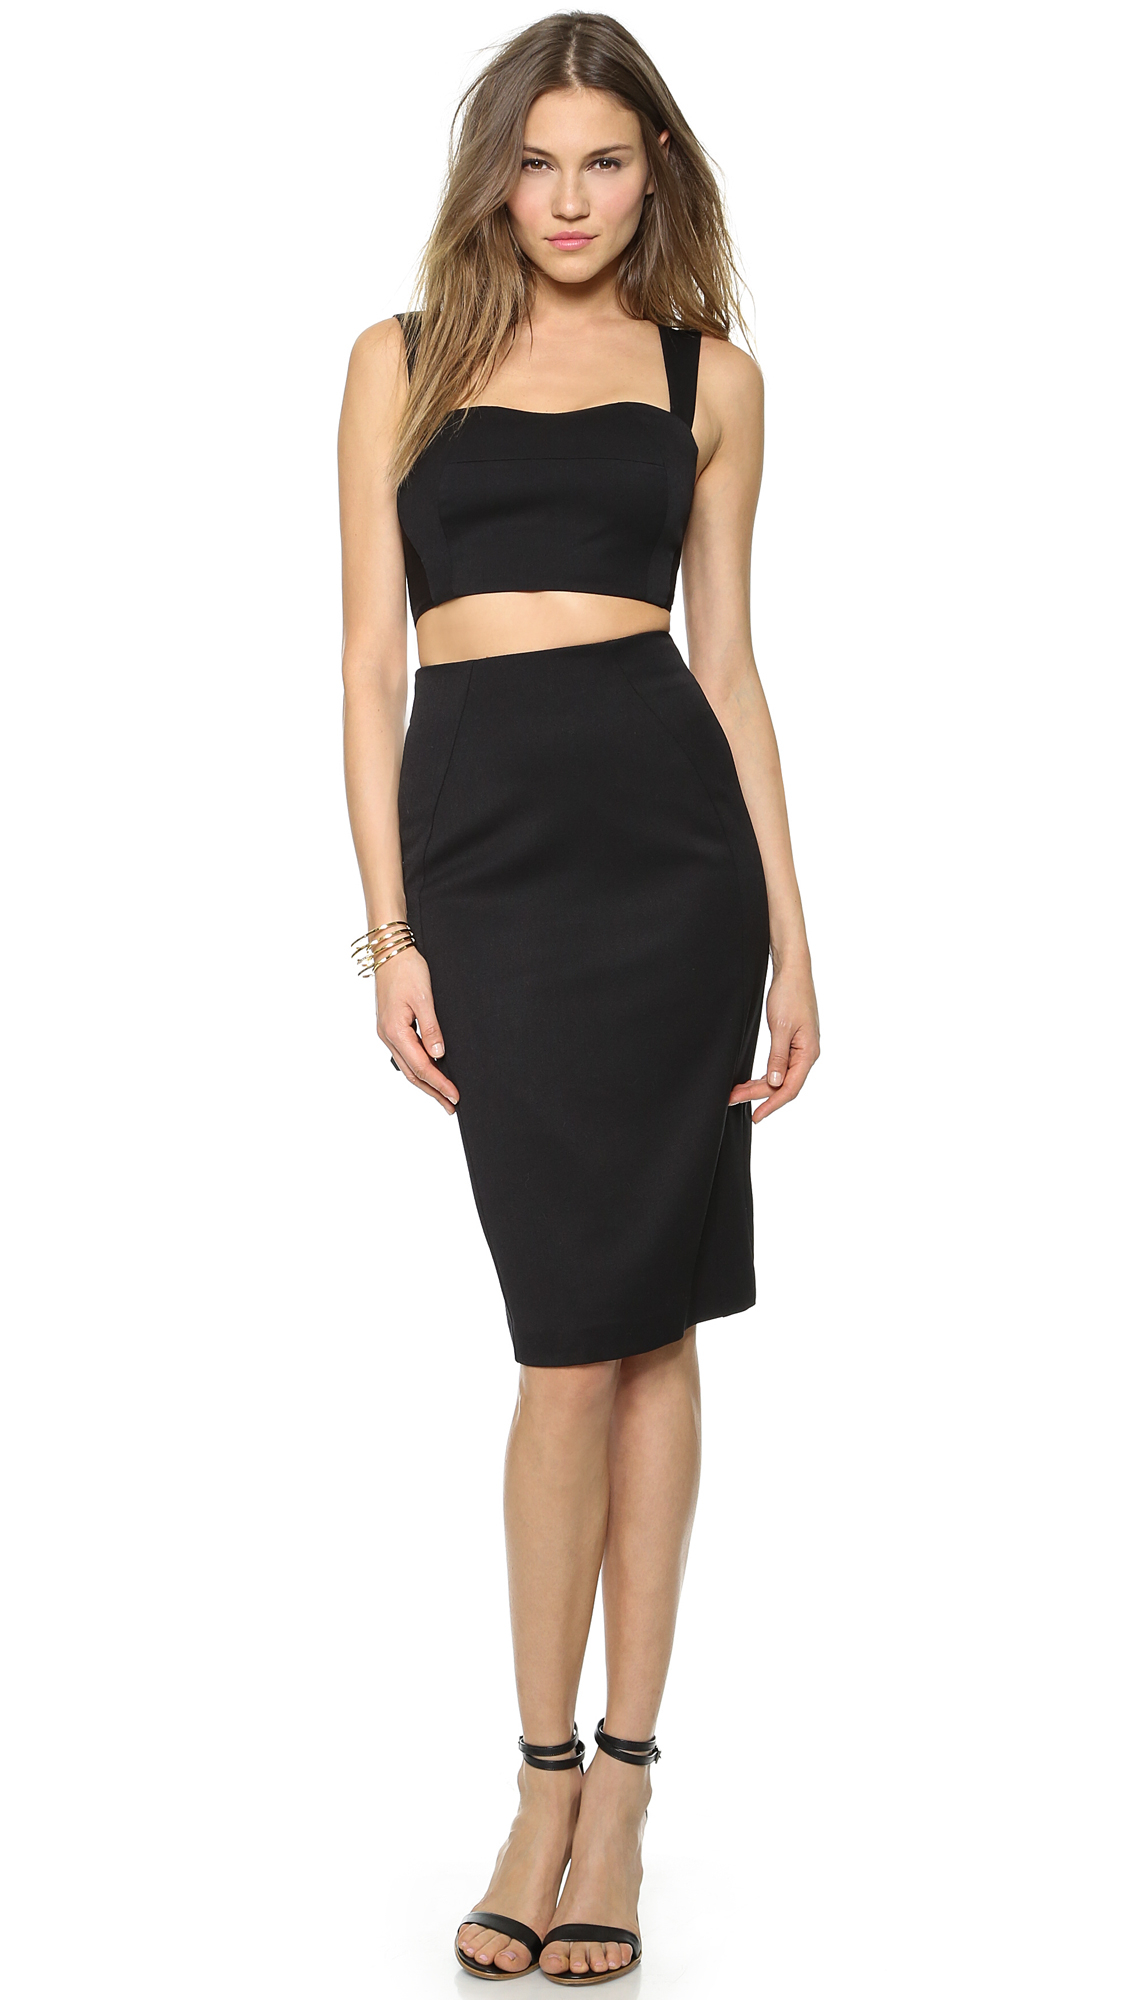 Black halo Kayley 2 Piece Dress Black in Black | Lyst